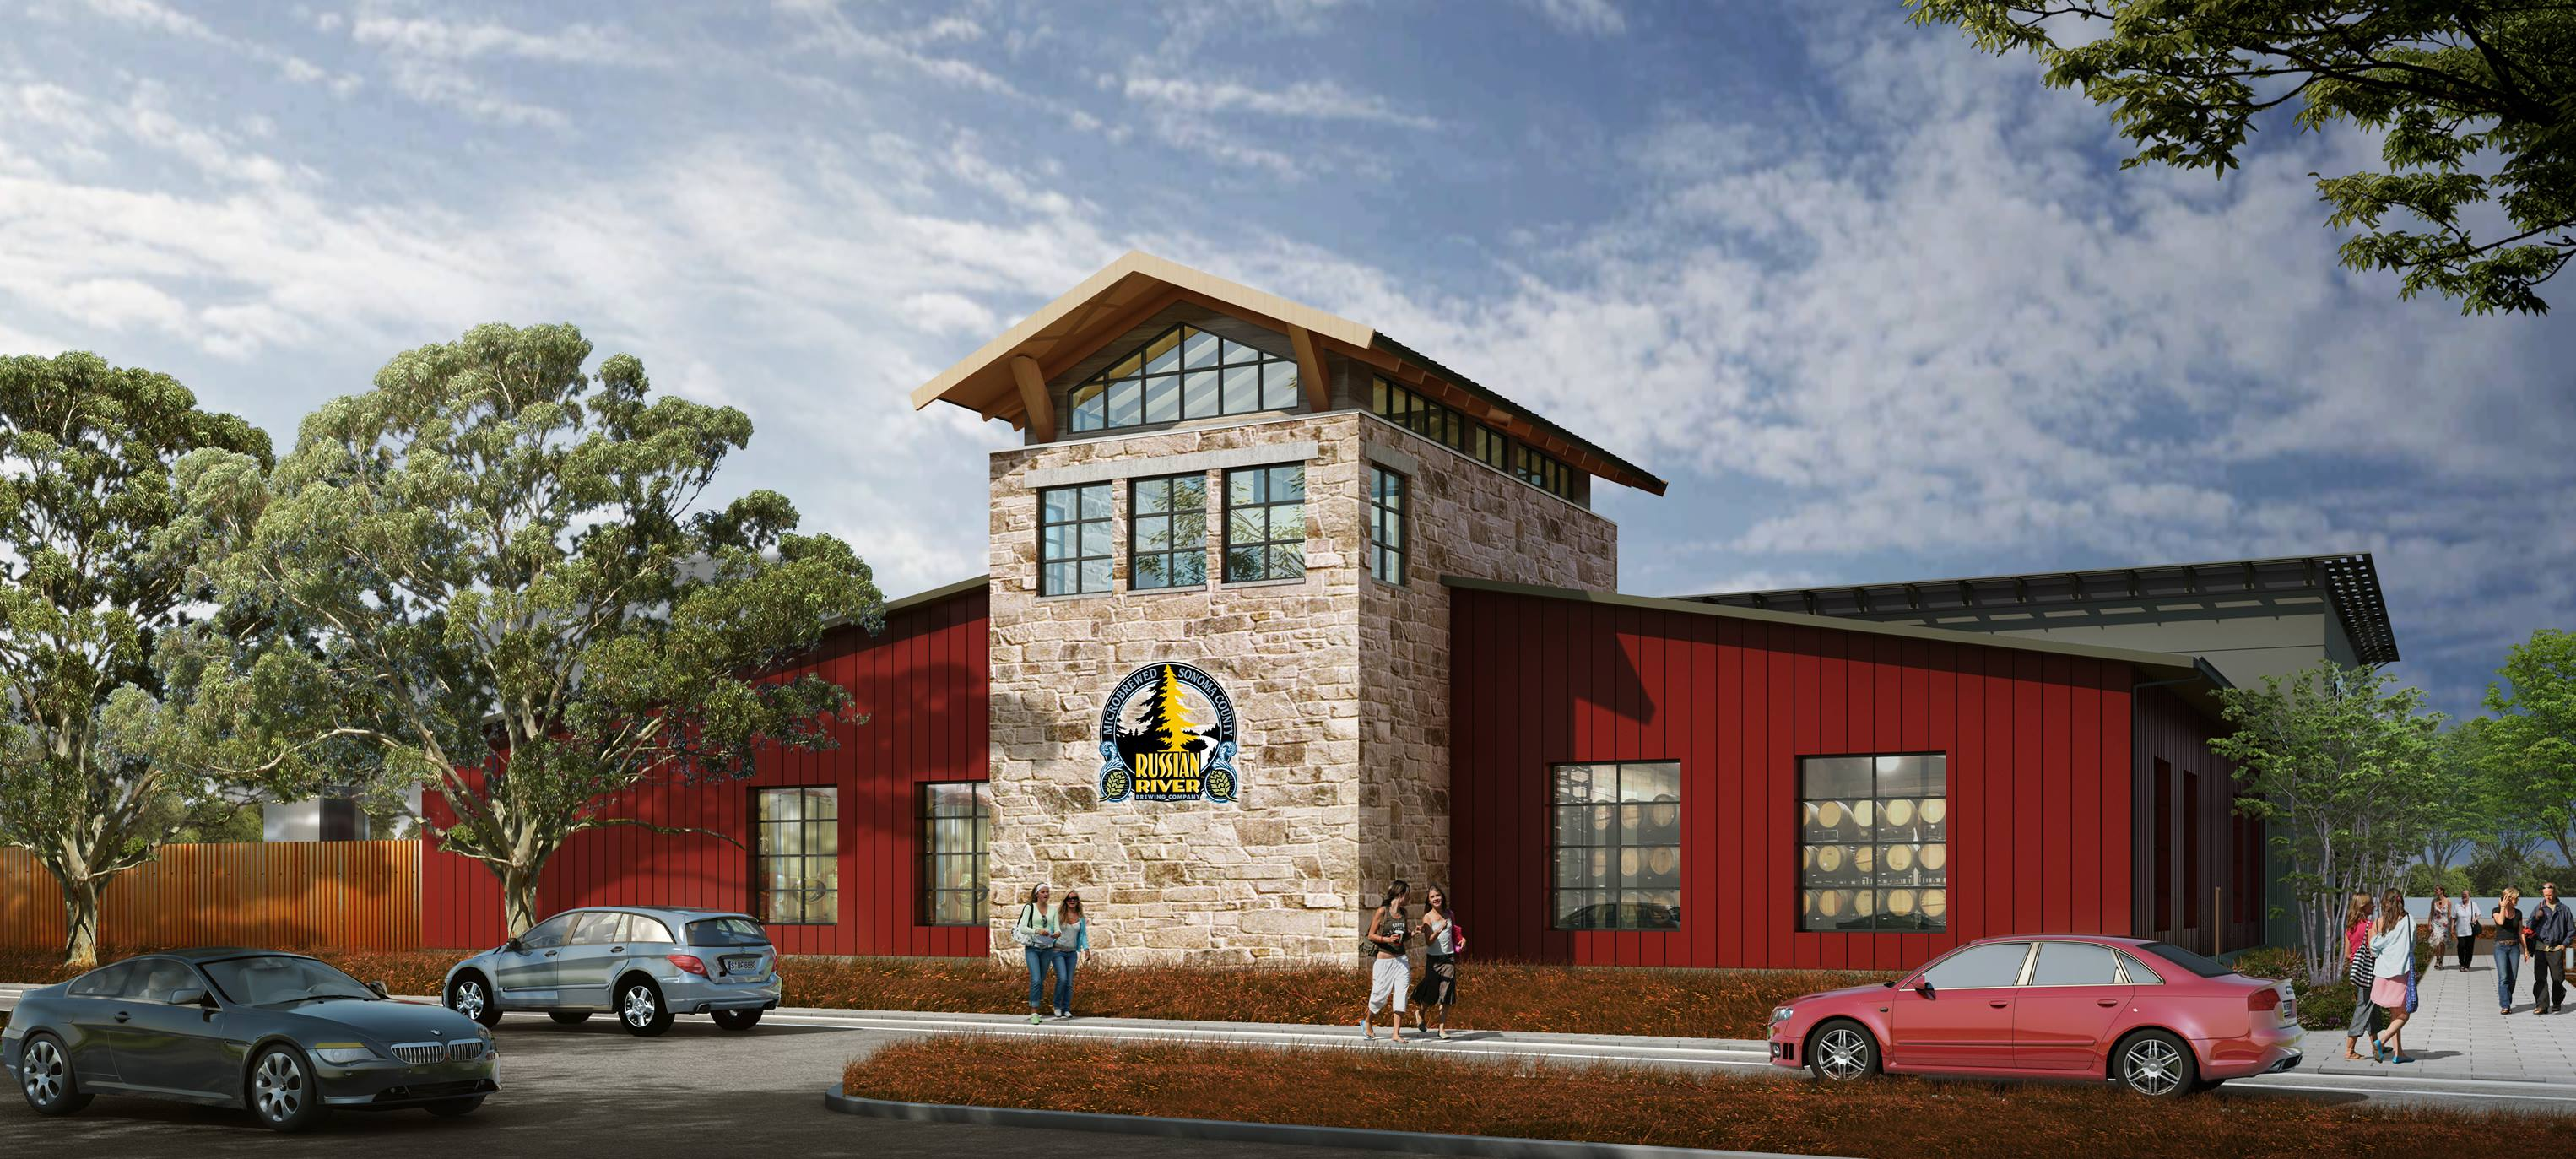 Russian River Brewing Officially Opens New Tasting Room and Restaurant